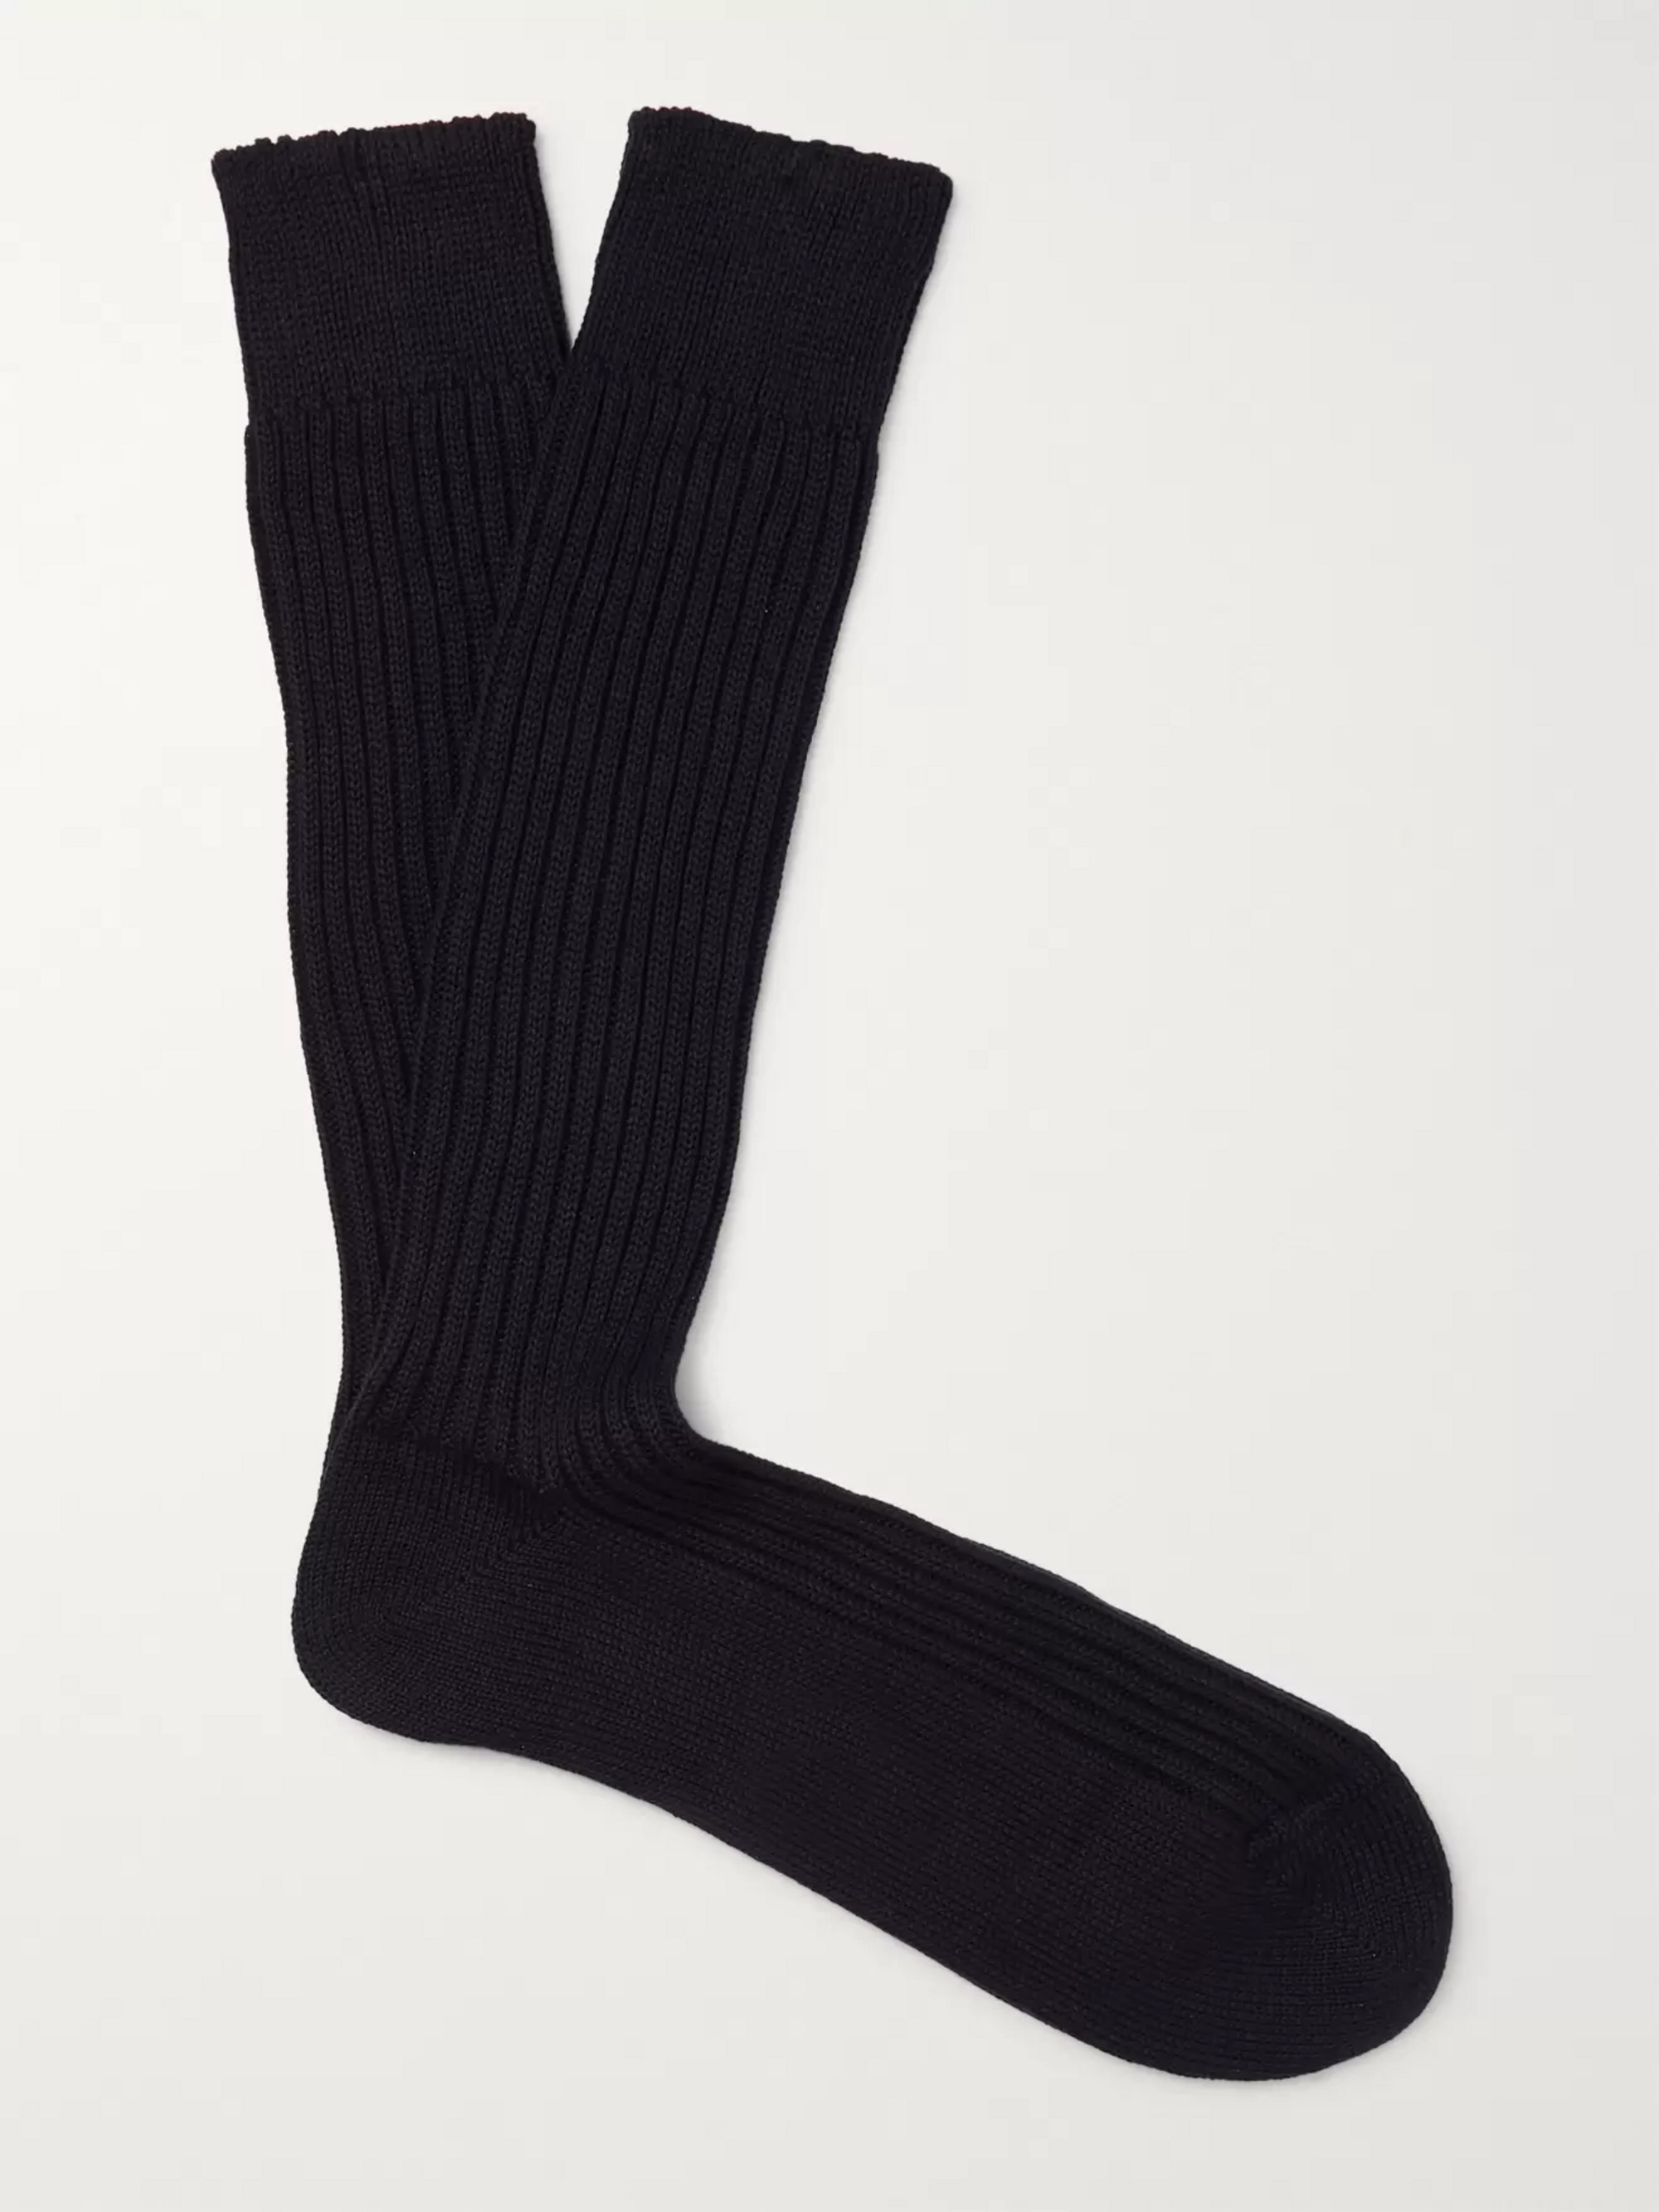 TOM FORD Ribbed Cotton Socks